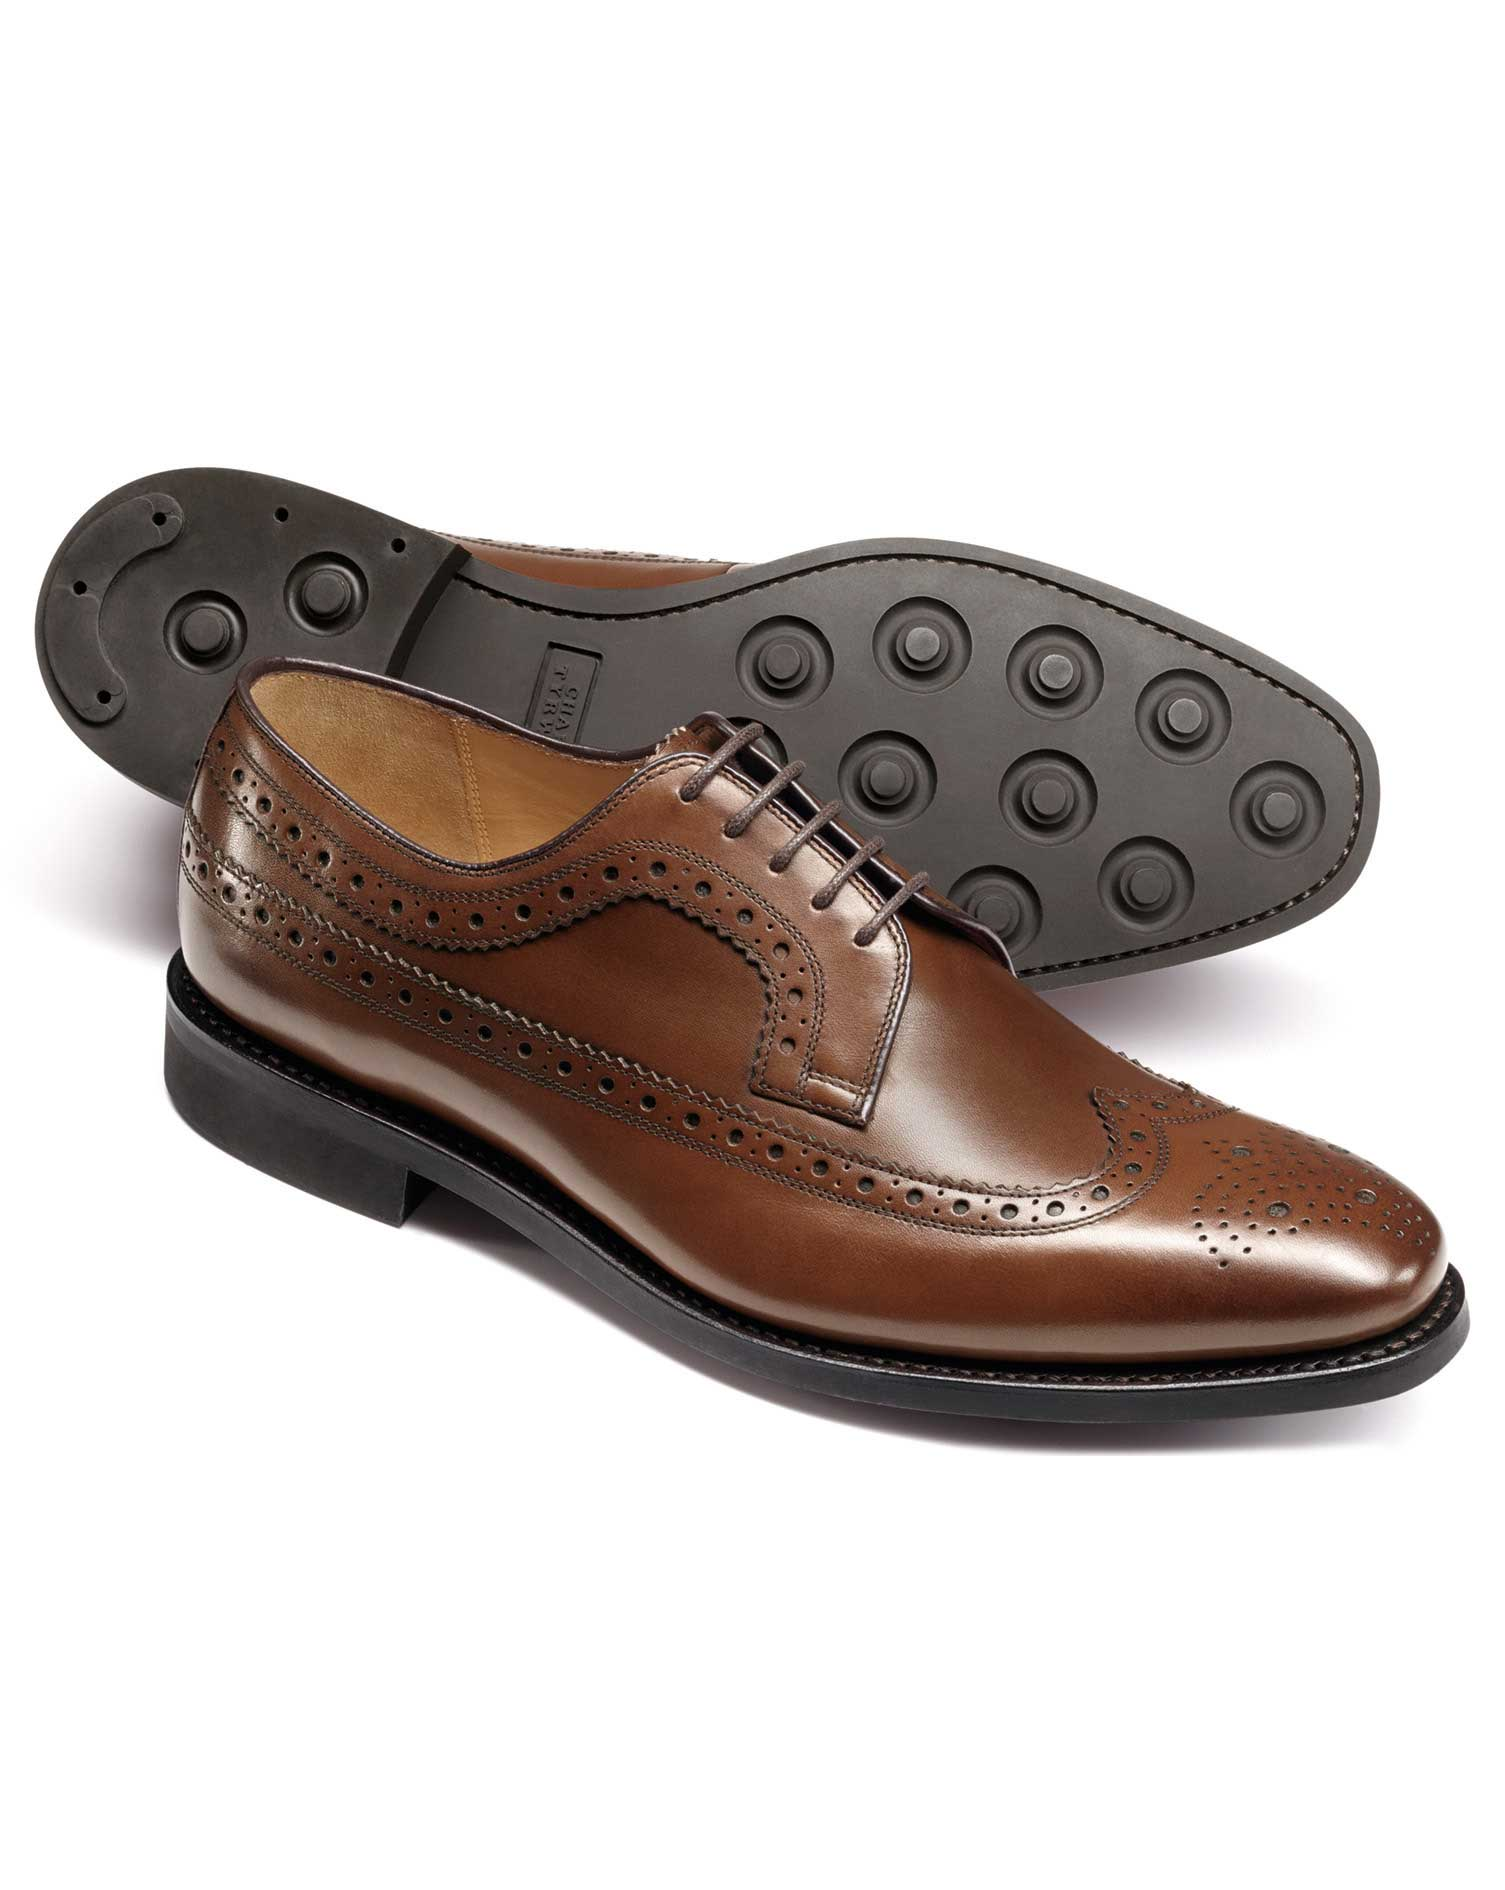 Chestnut Goodyear Welted Derby Wing Tip Brogue Shoes Size 12 W by Charles Tyrwhitt